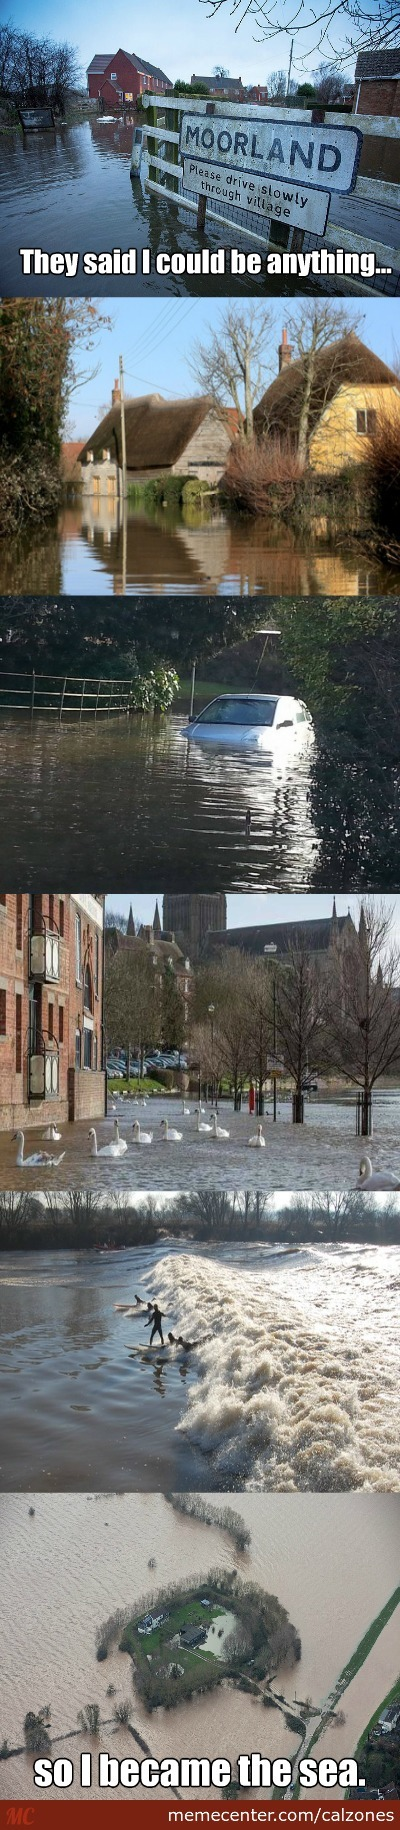 This Is Somerset, England, As It Currently Floats